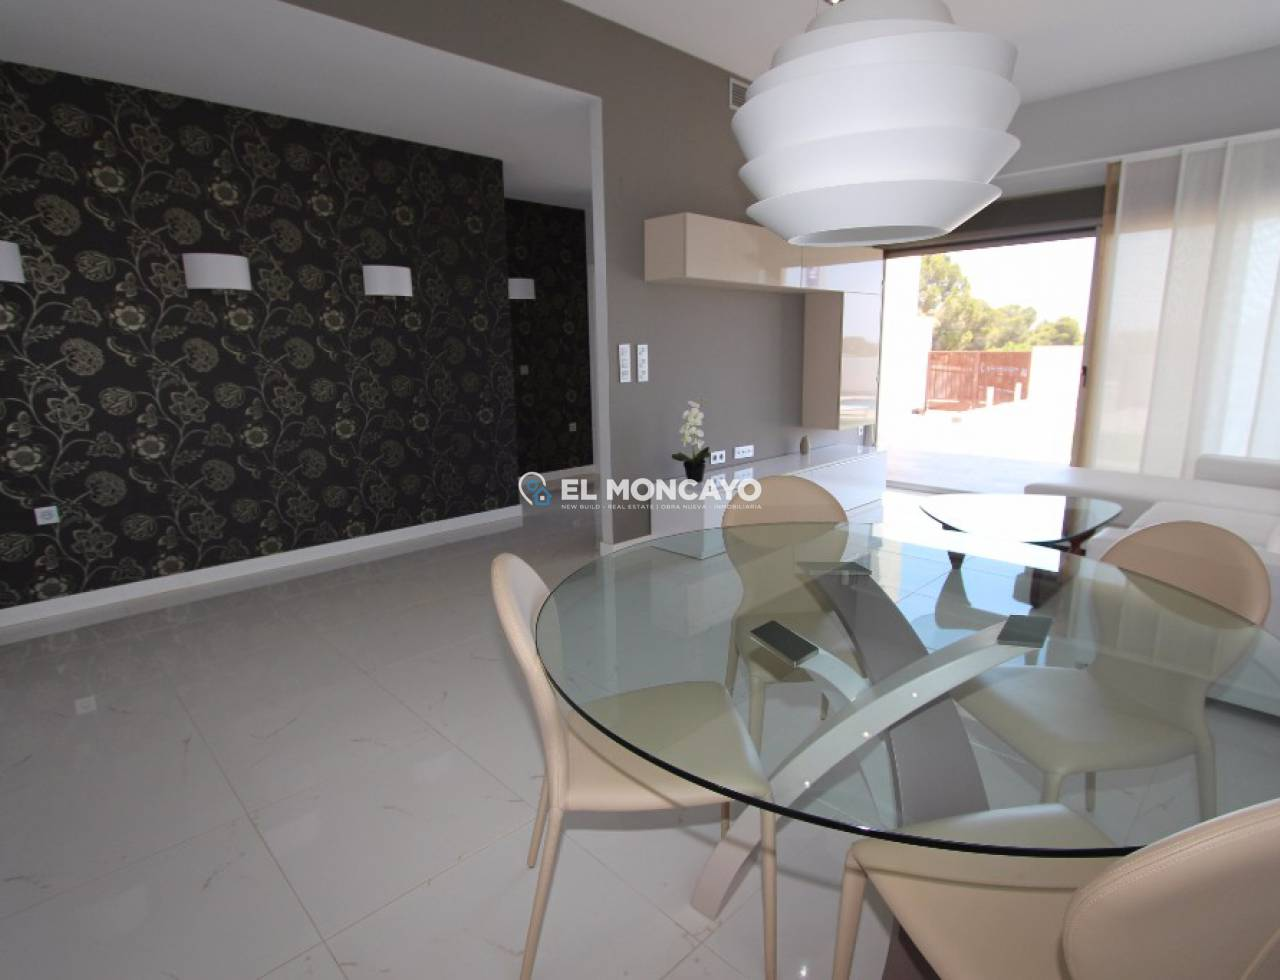 New build villa in Villamartin - Orihuela Costa - Costa Blanca south 142 (16)